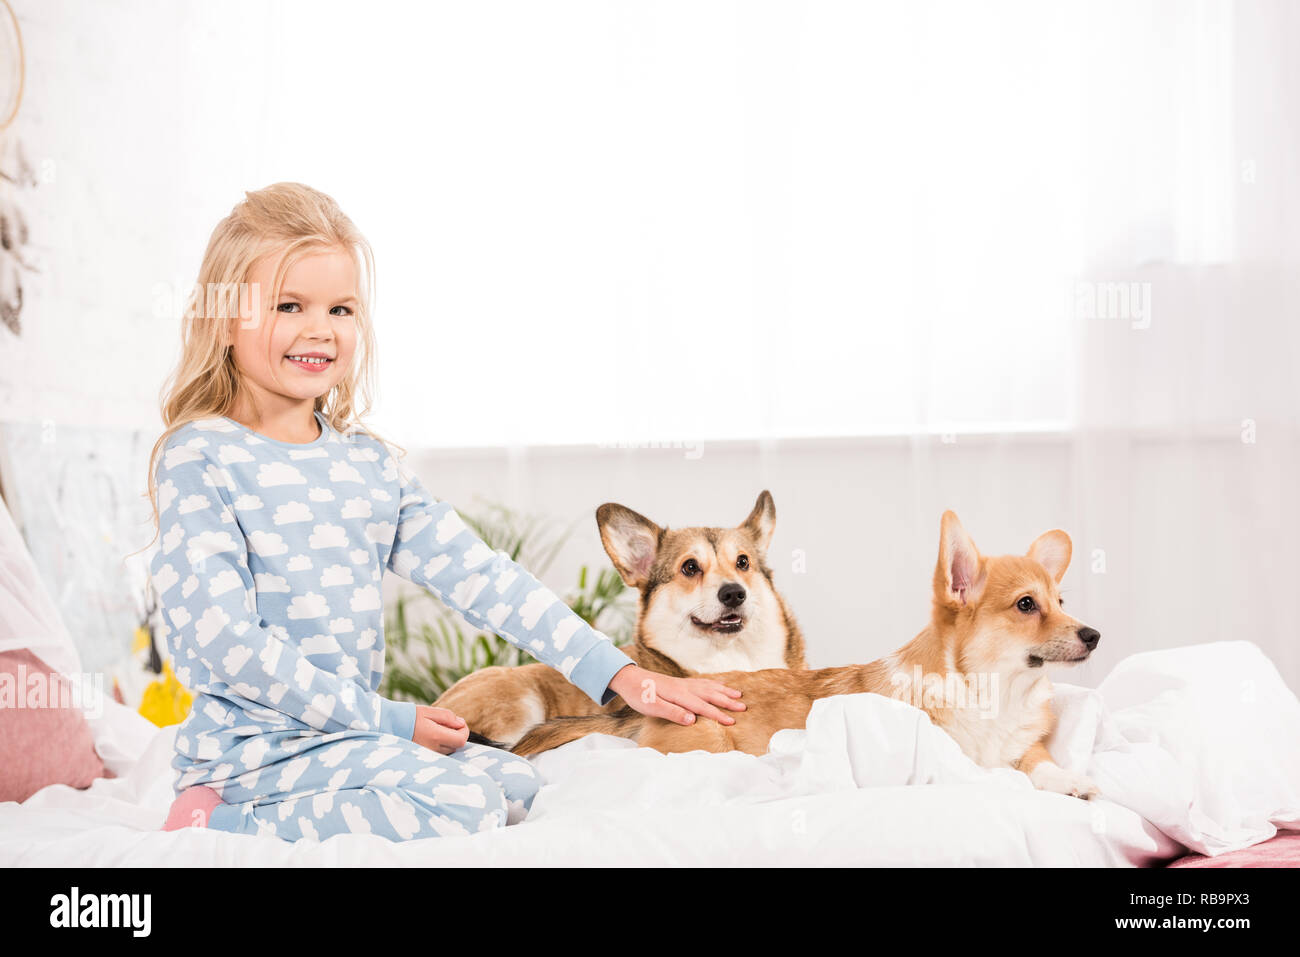 adorable kid in pajamas petting corgi dogs in bed - Stock Image